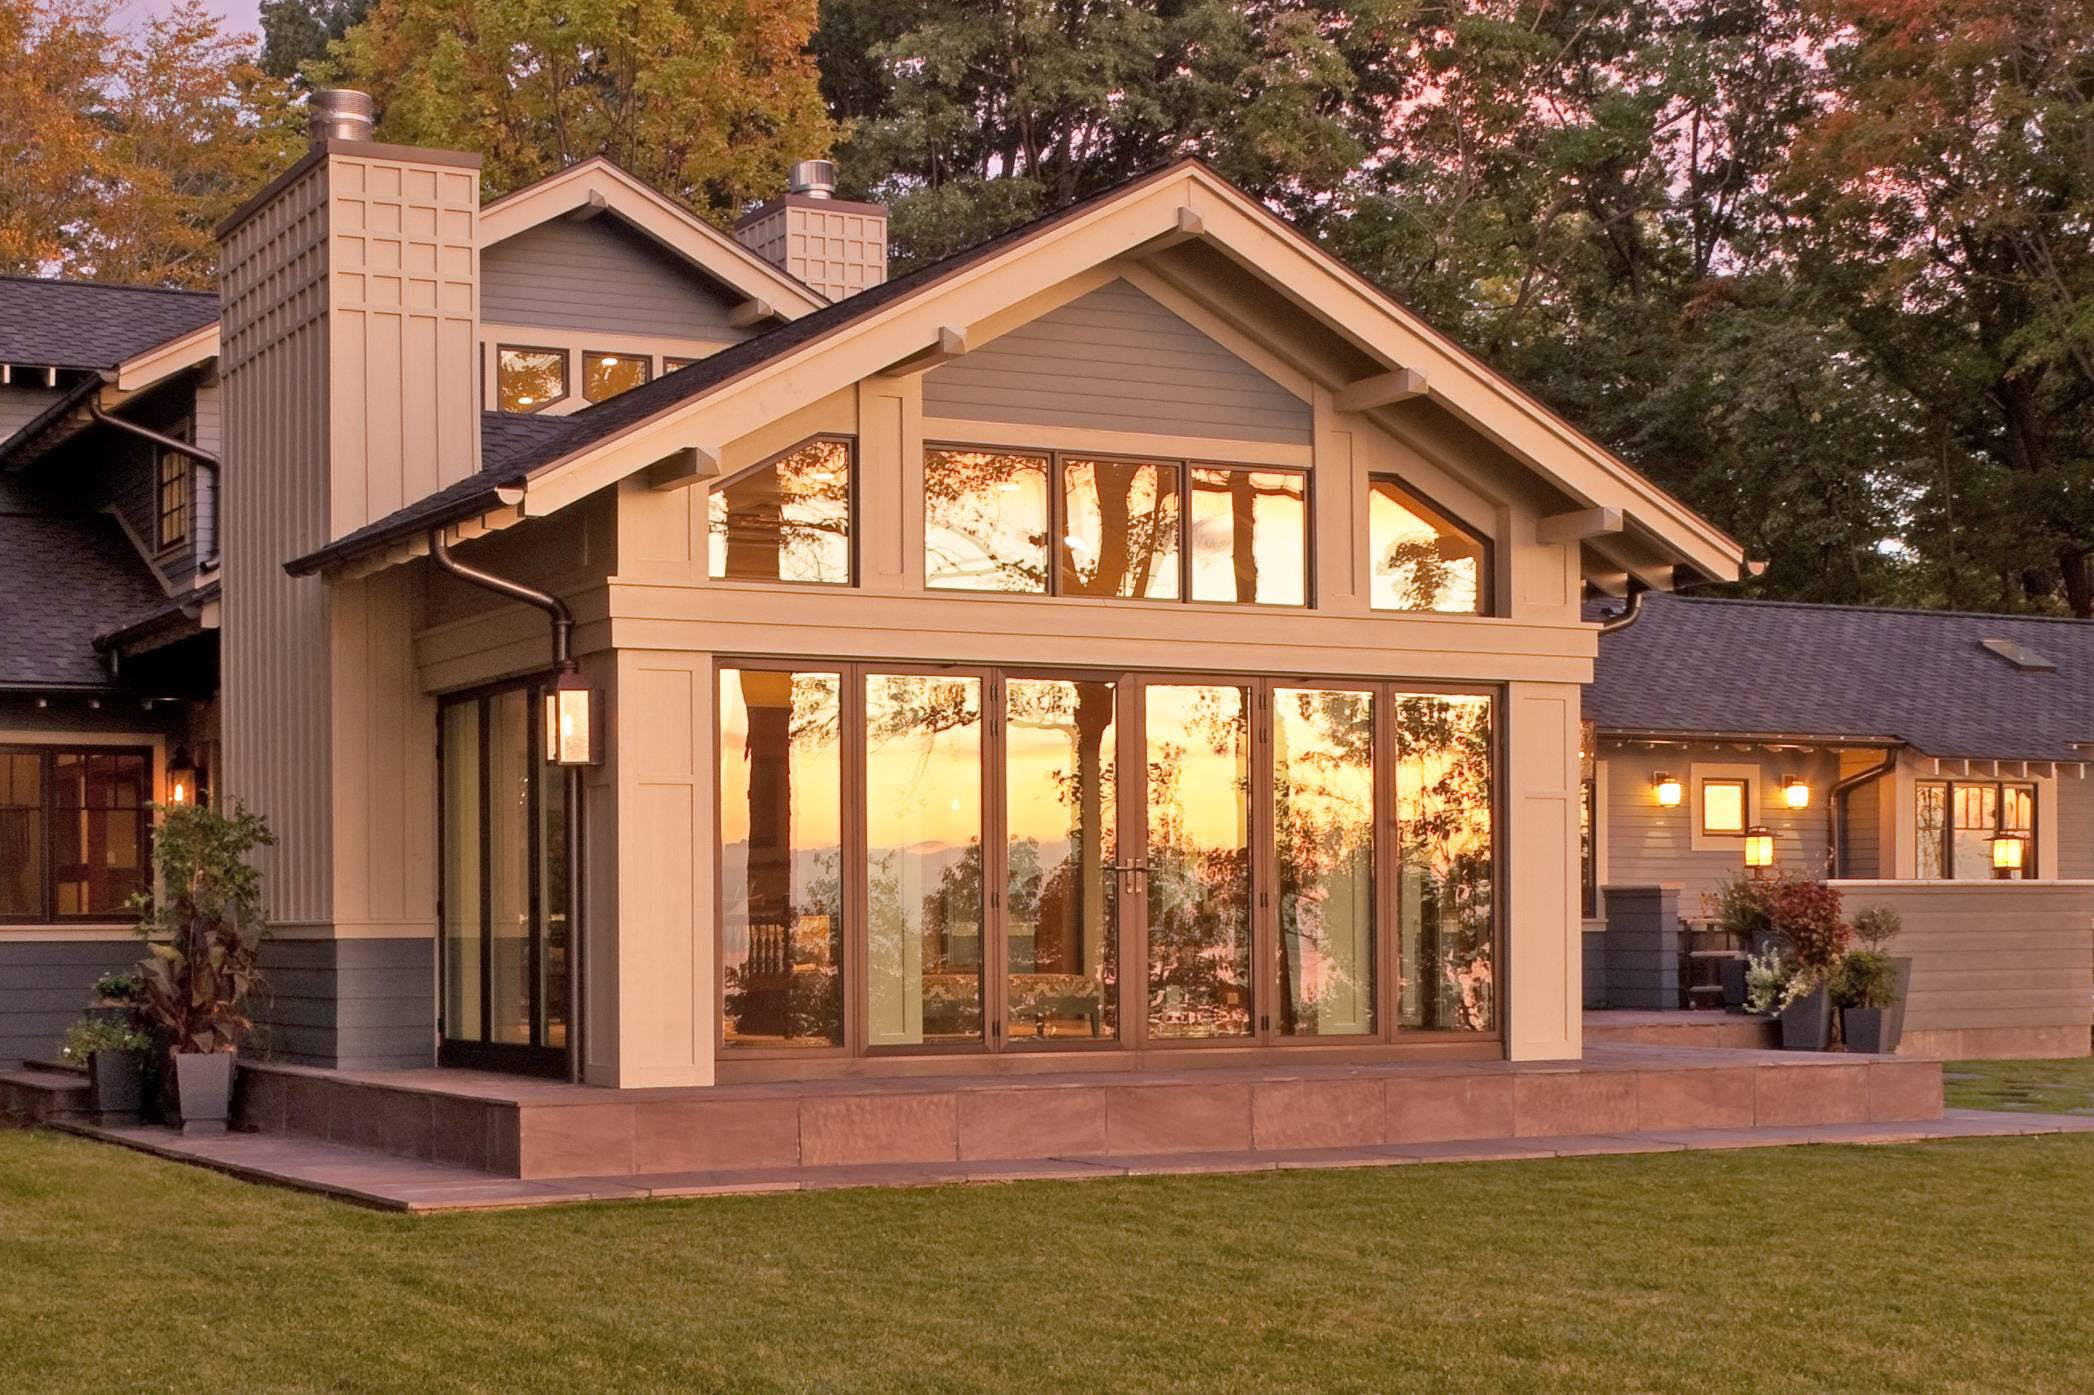 michigan-residence-with-exterior-opening-glass-aluminum-framed-system